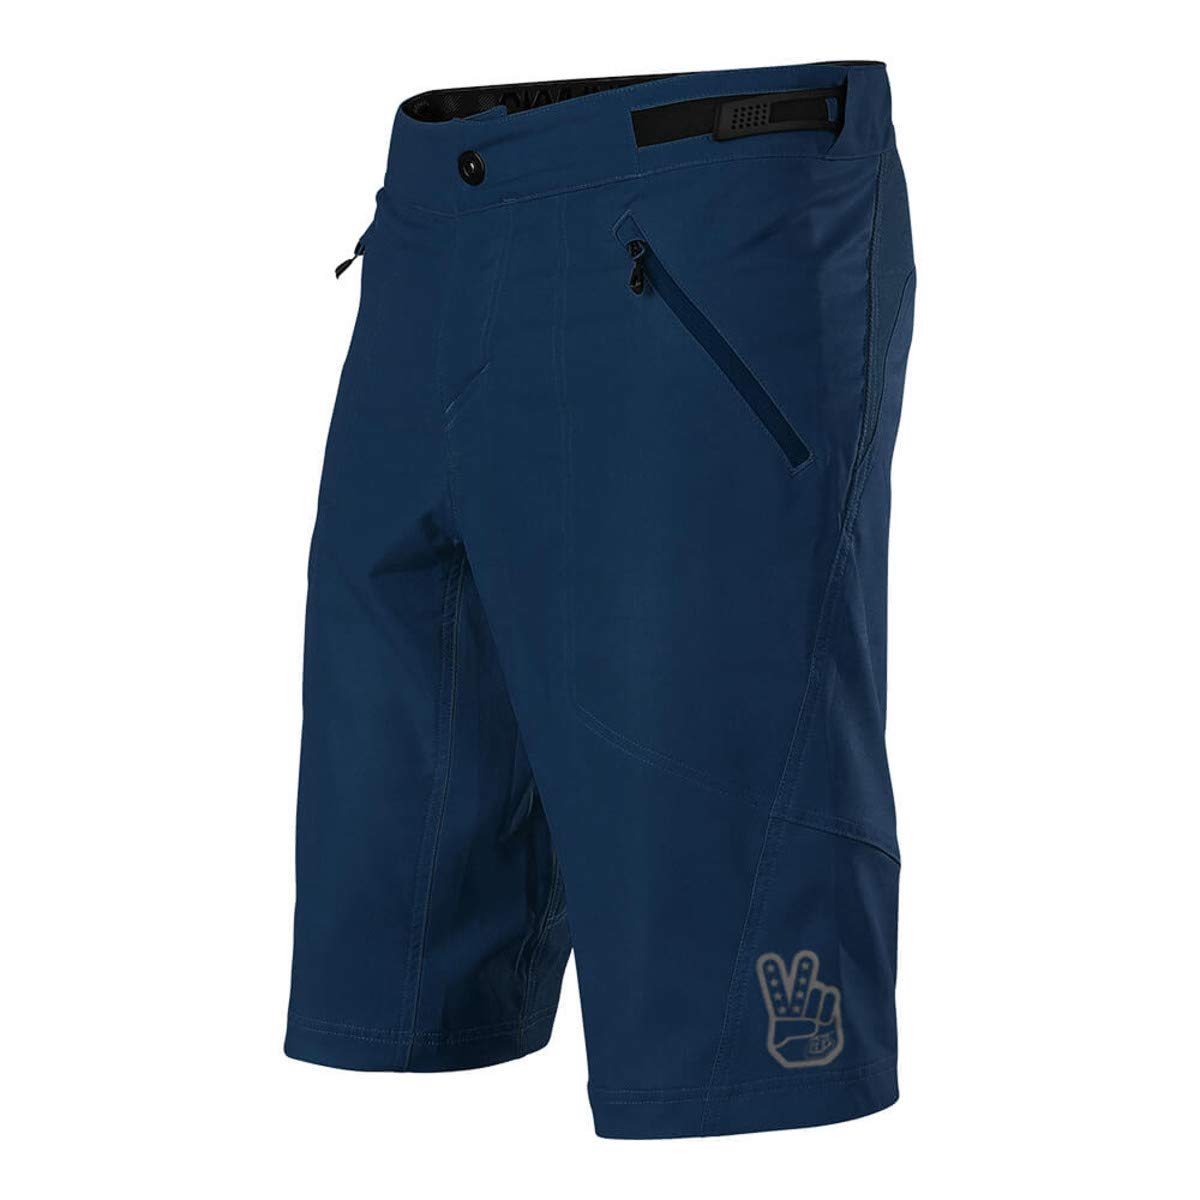 Troy Lee Designs Skyline Short - Boys' Solid Navy, 26 by Troy Lee Designs